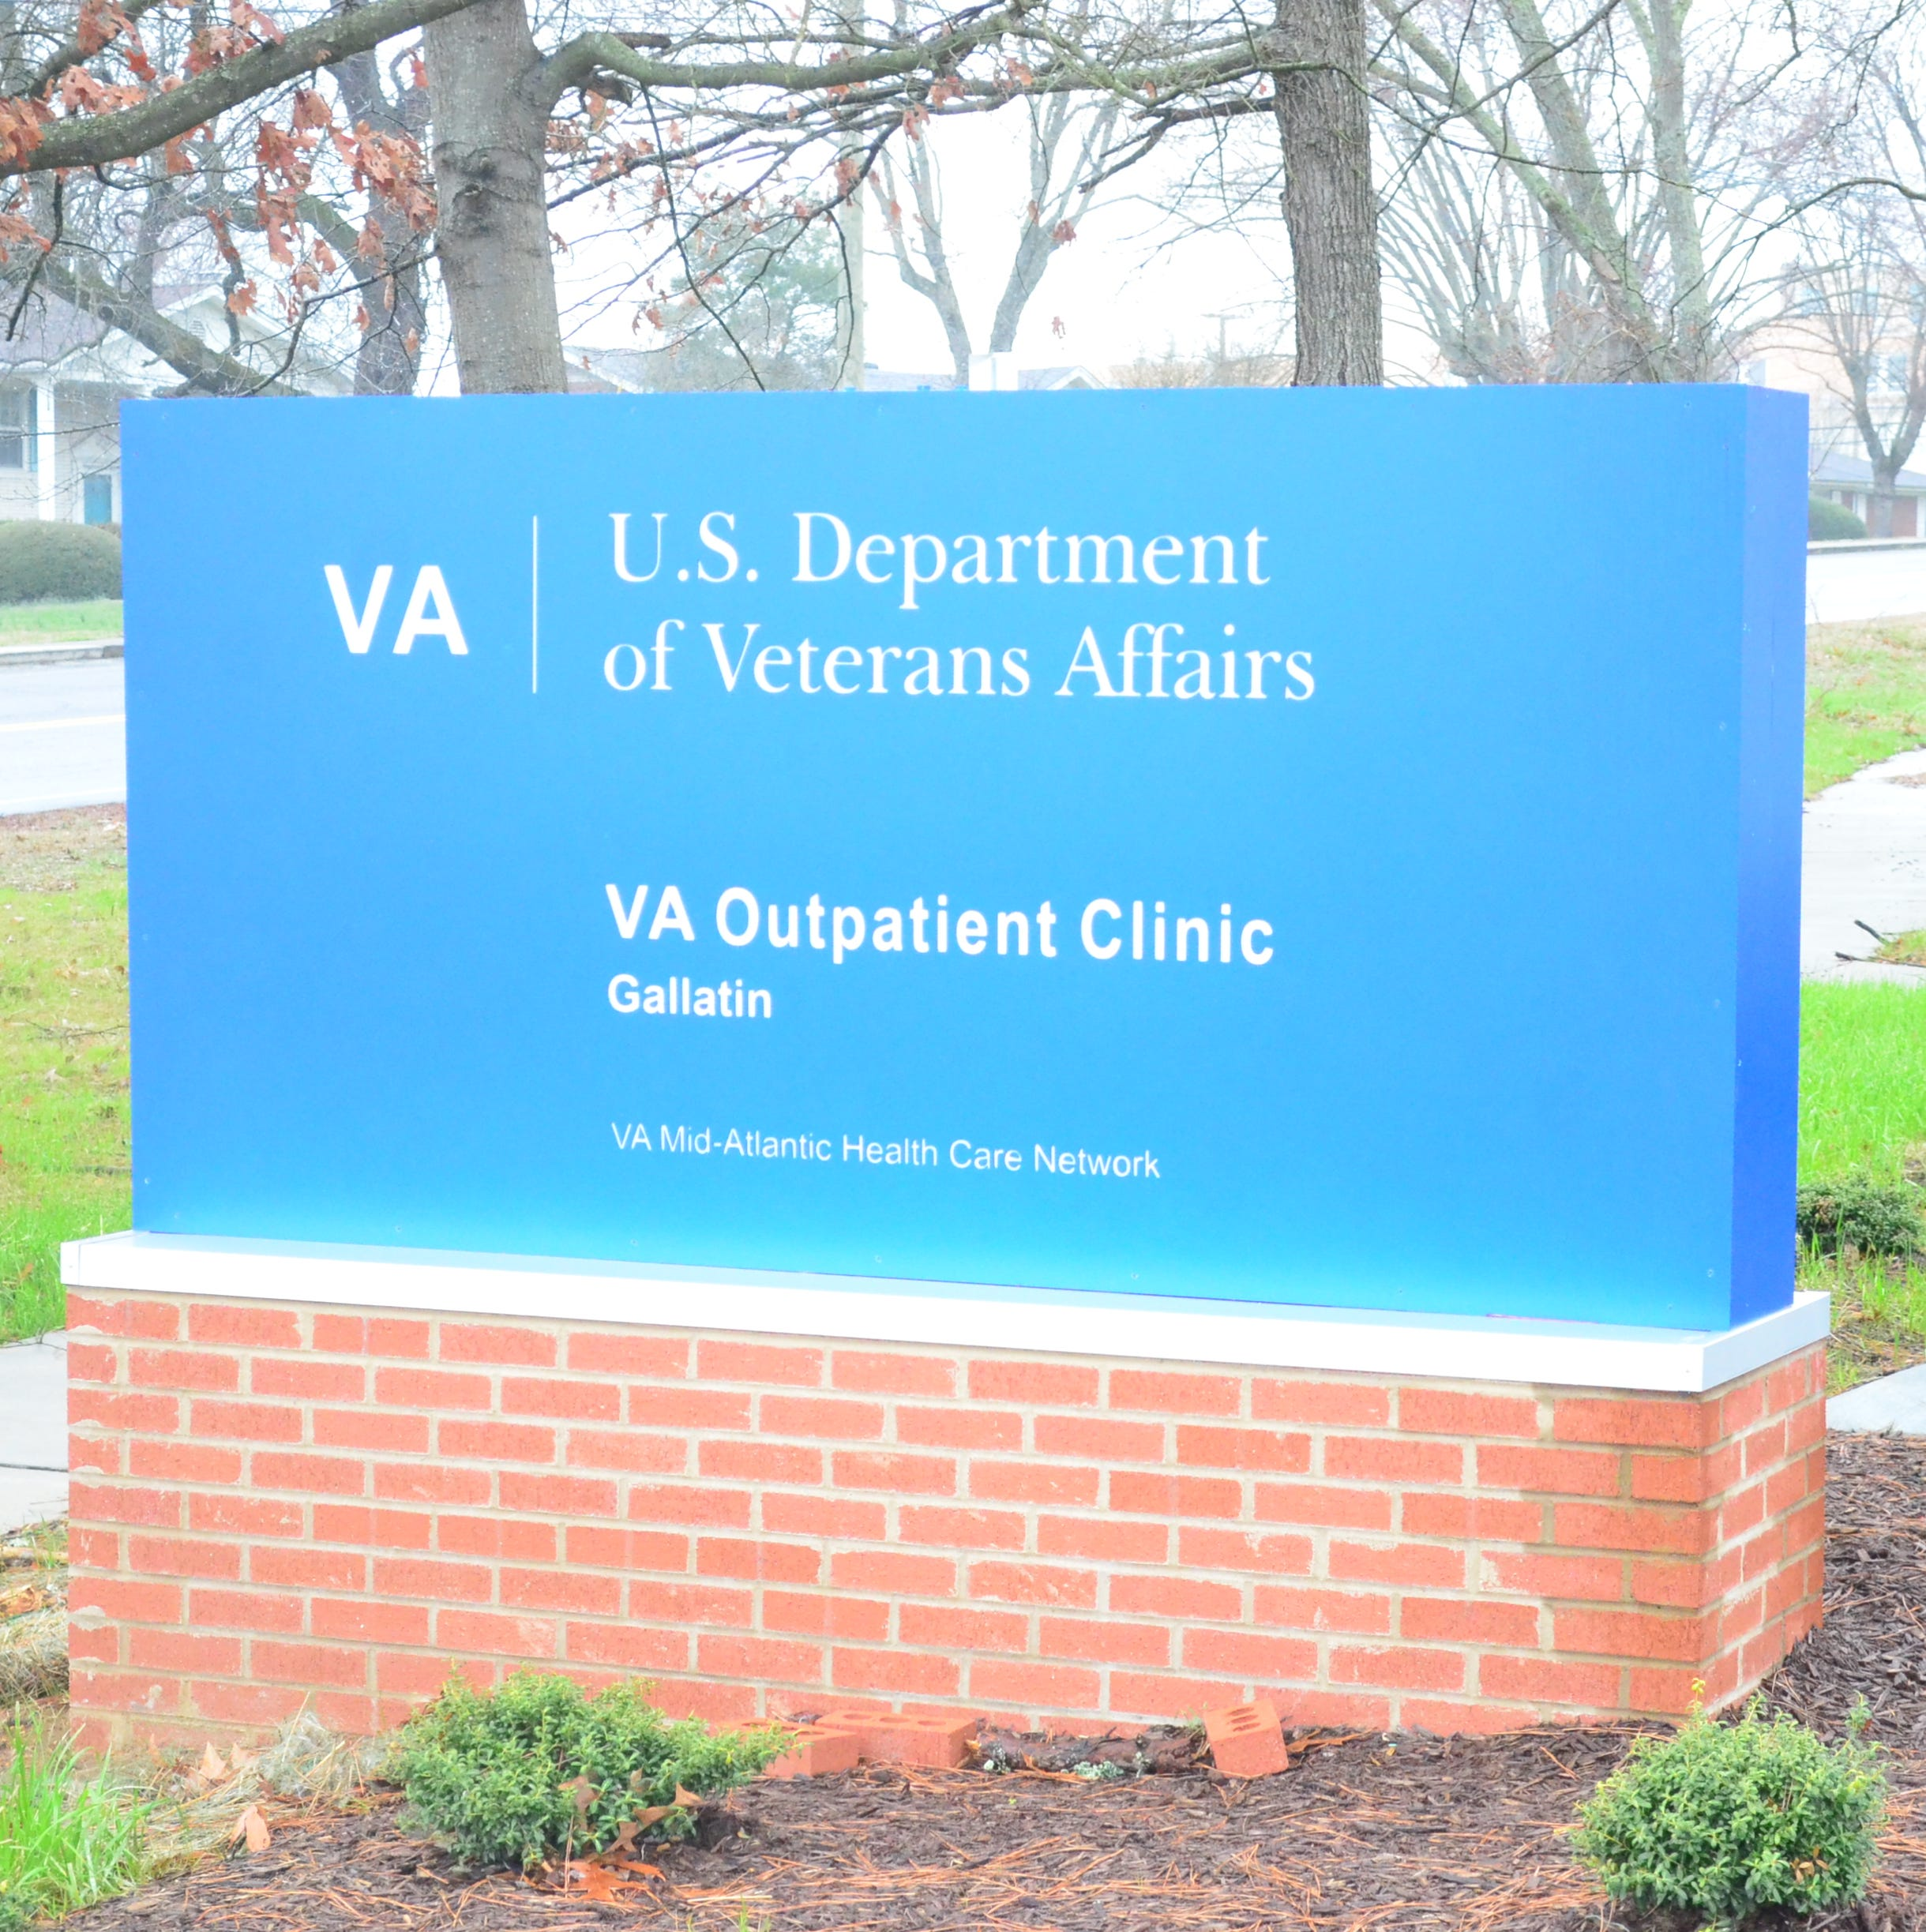 Opinion: Don't do away with the VA. We just think the system can work better